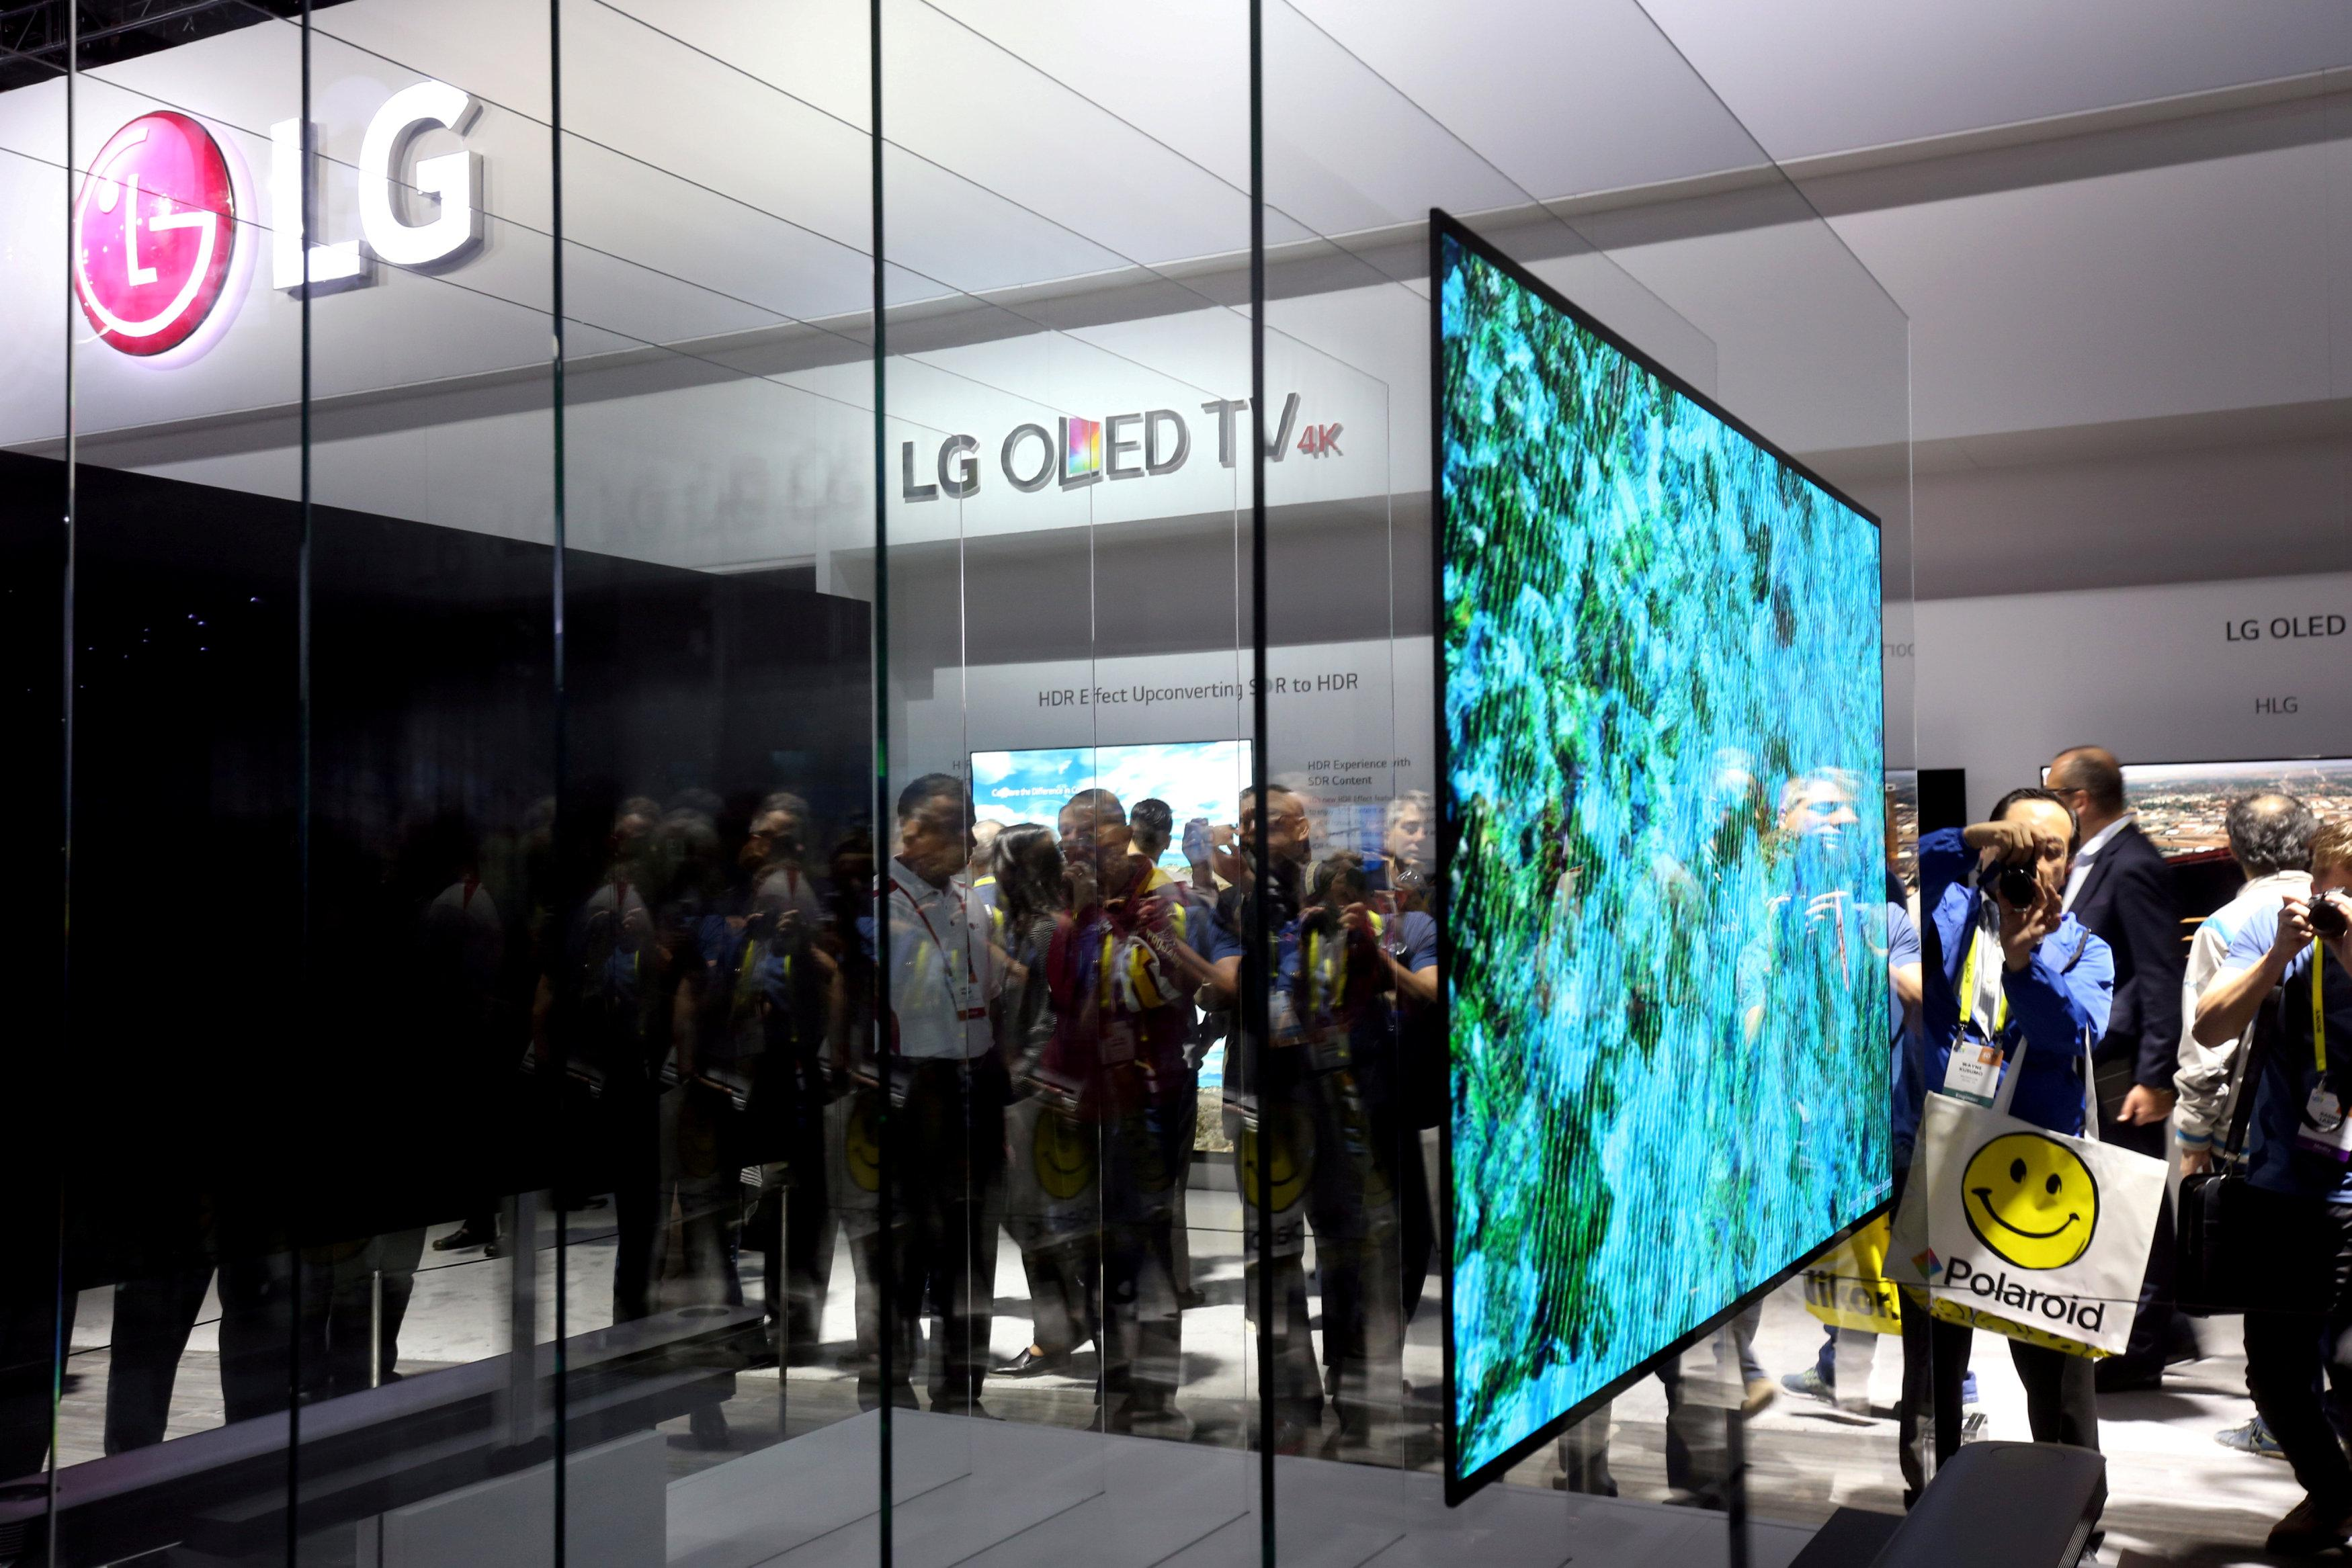 A 77-inch LG Signature W OLED television is displayed during the 2017 CES in Las Vegas, Nevada, U.S., January 5, 2017. Steve Marcus